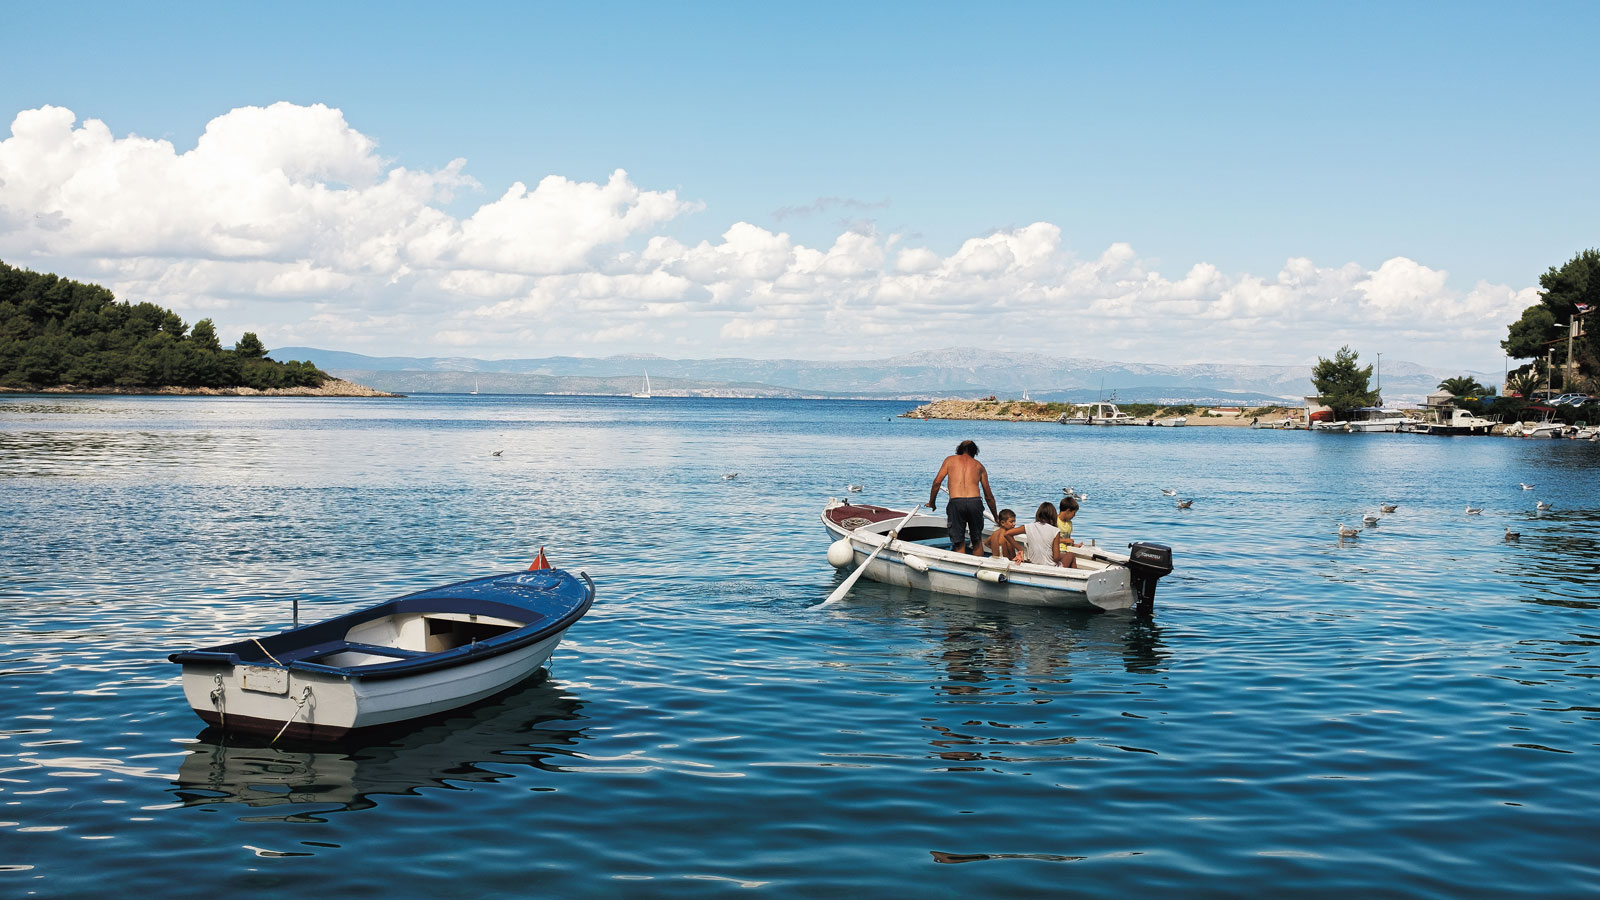 FIshing at Croatia's Mediterranean Coast